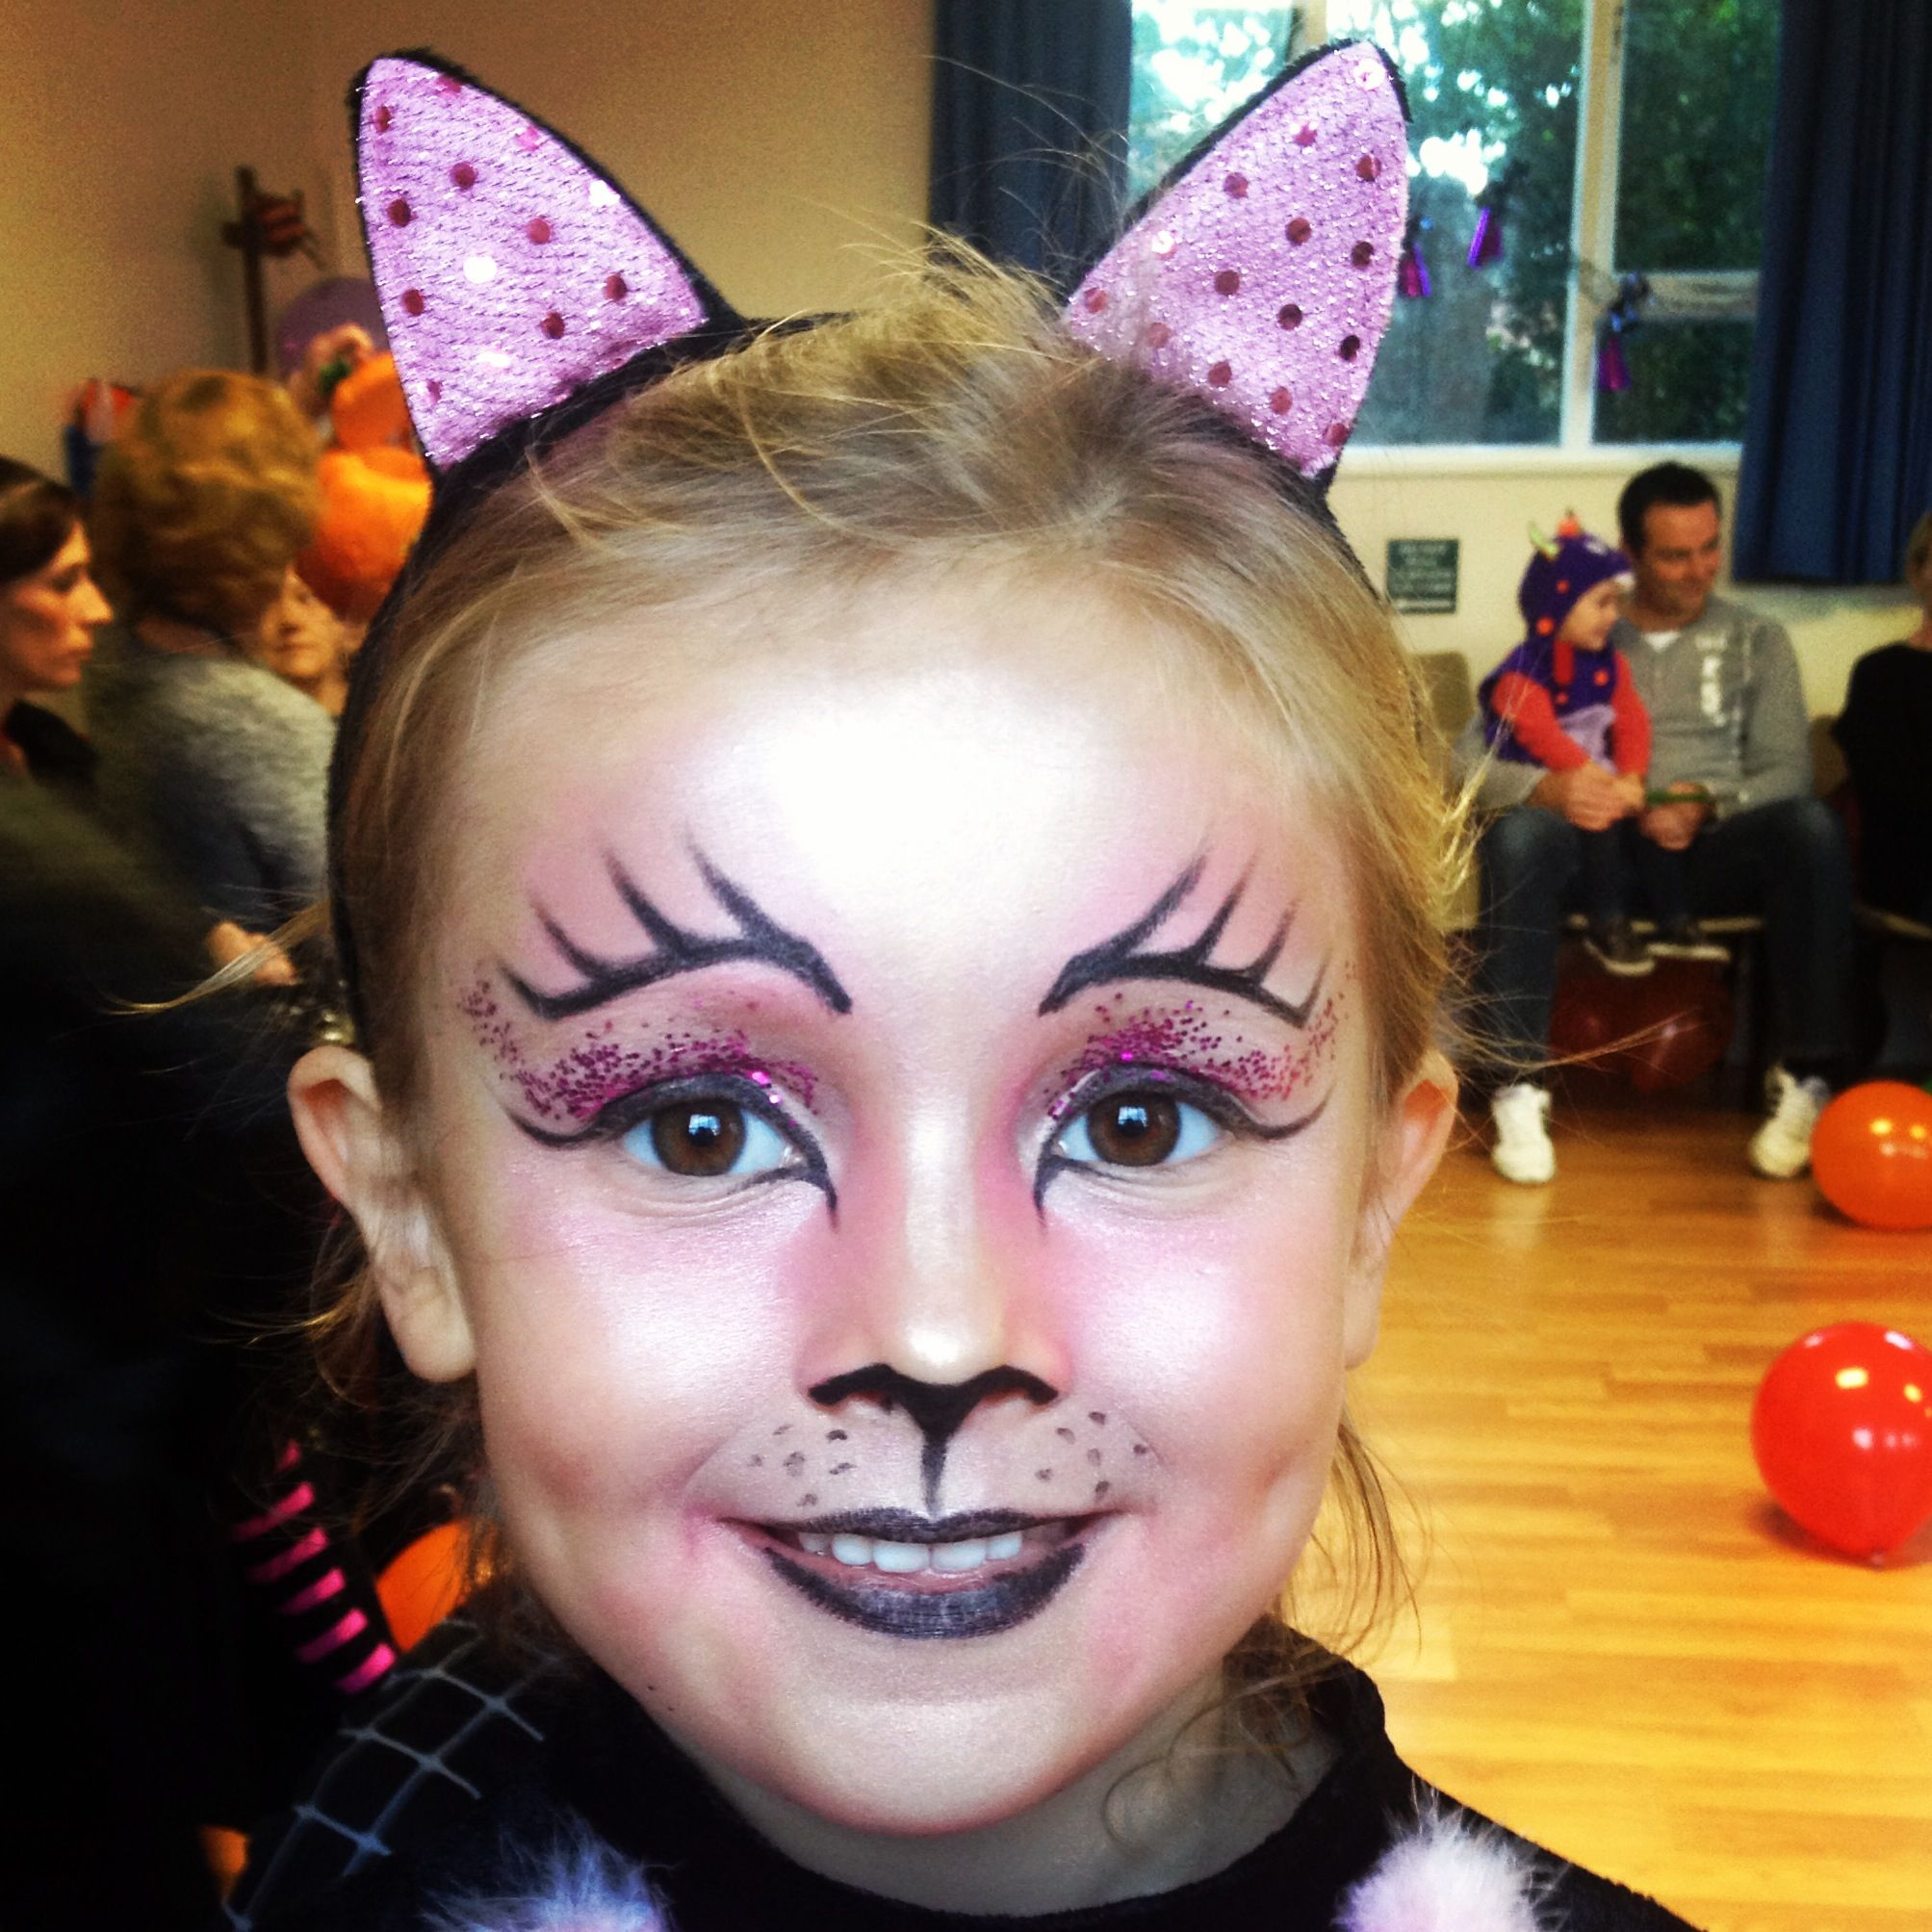 Girl S Cat Makeup Without Face Paint Kitty Face Paint Cat Makeup For Kids Halloween Makeup For Kids